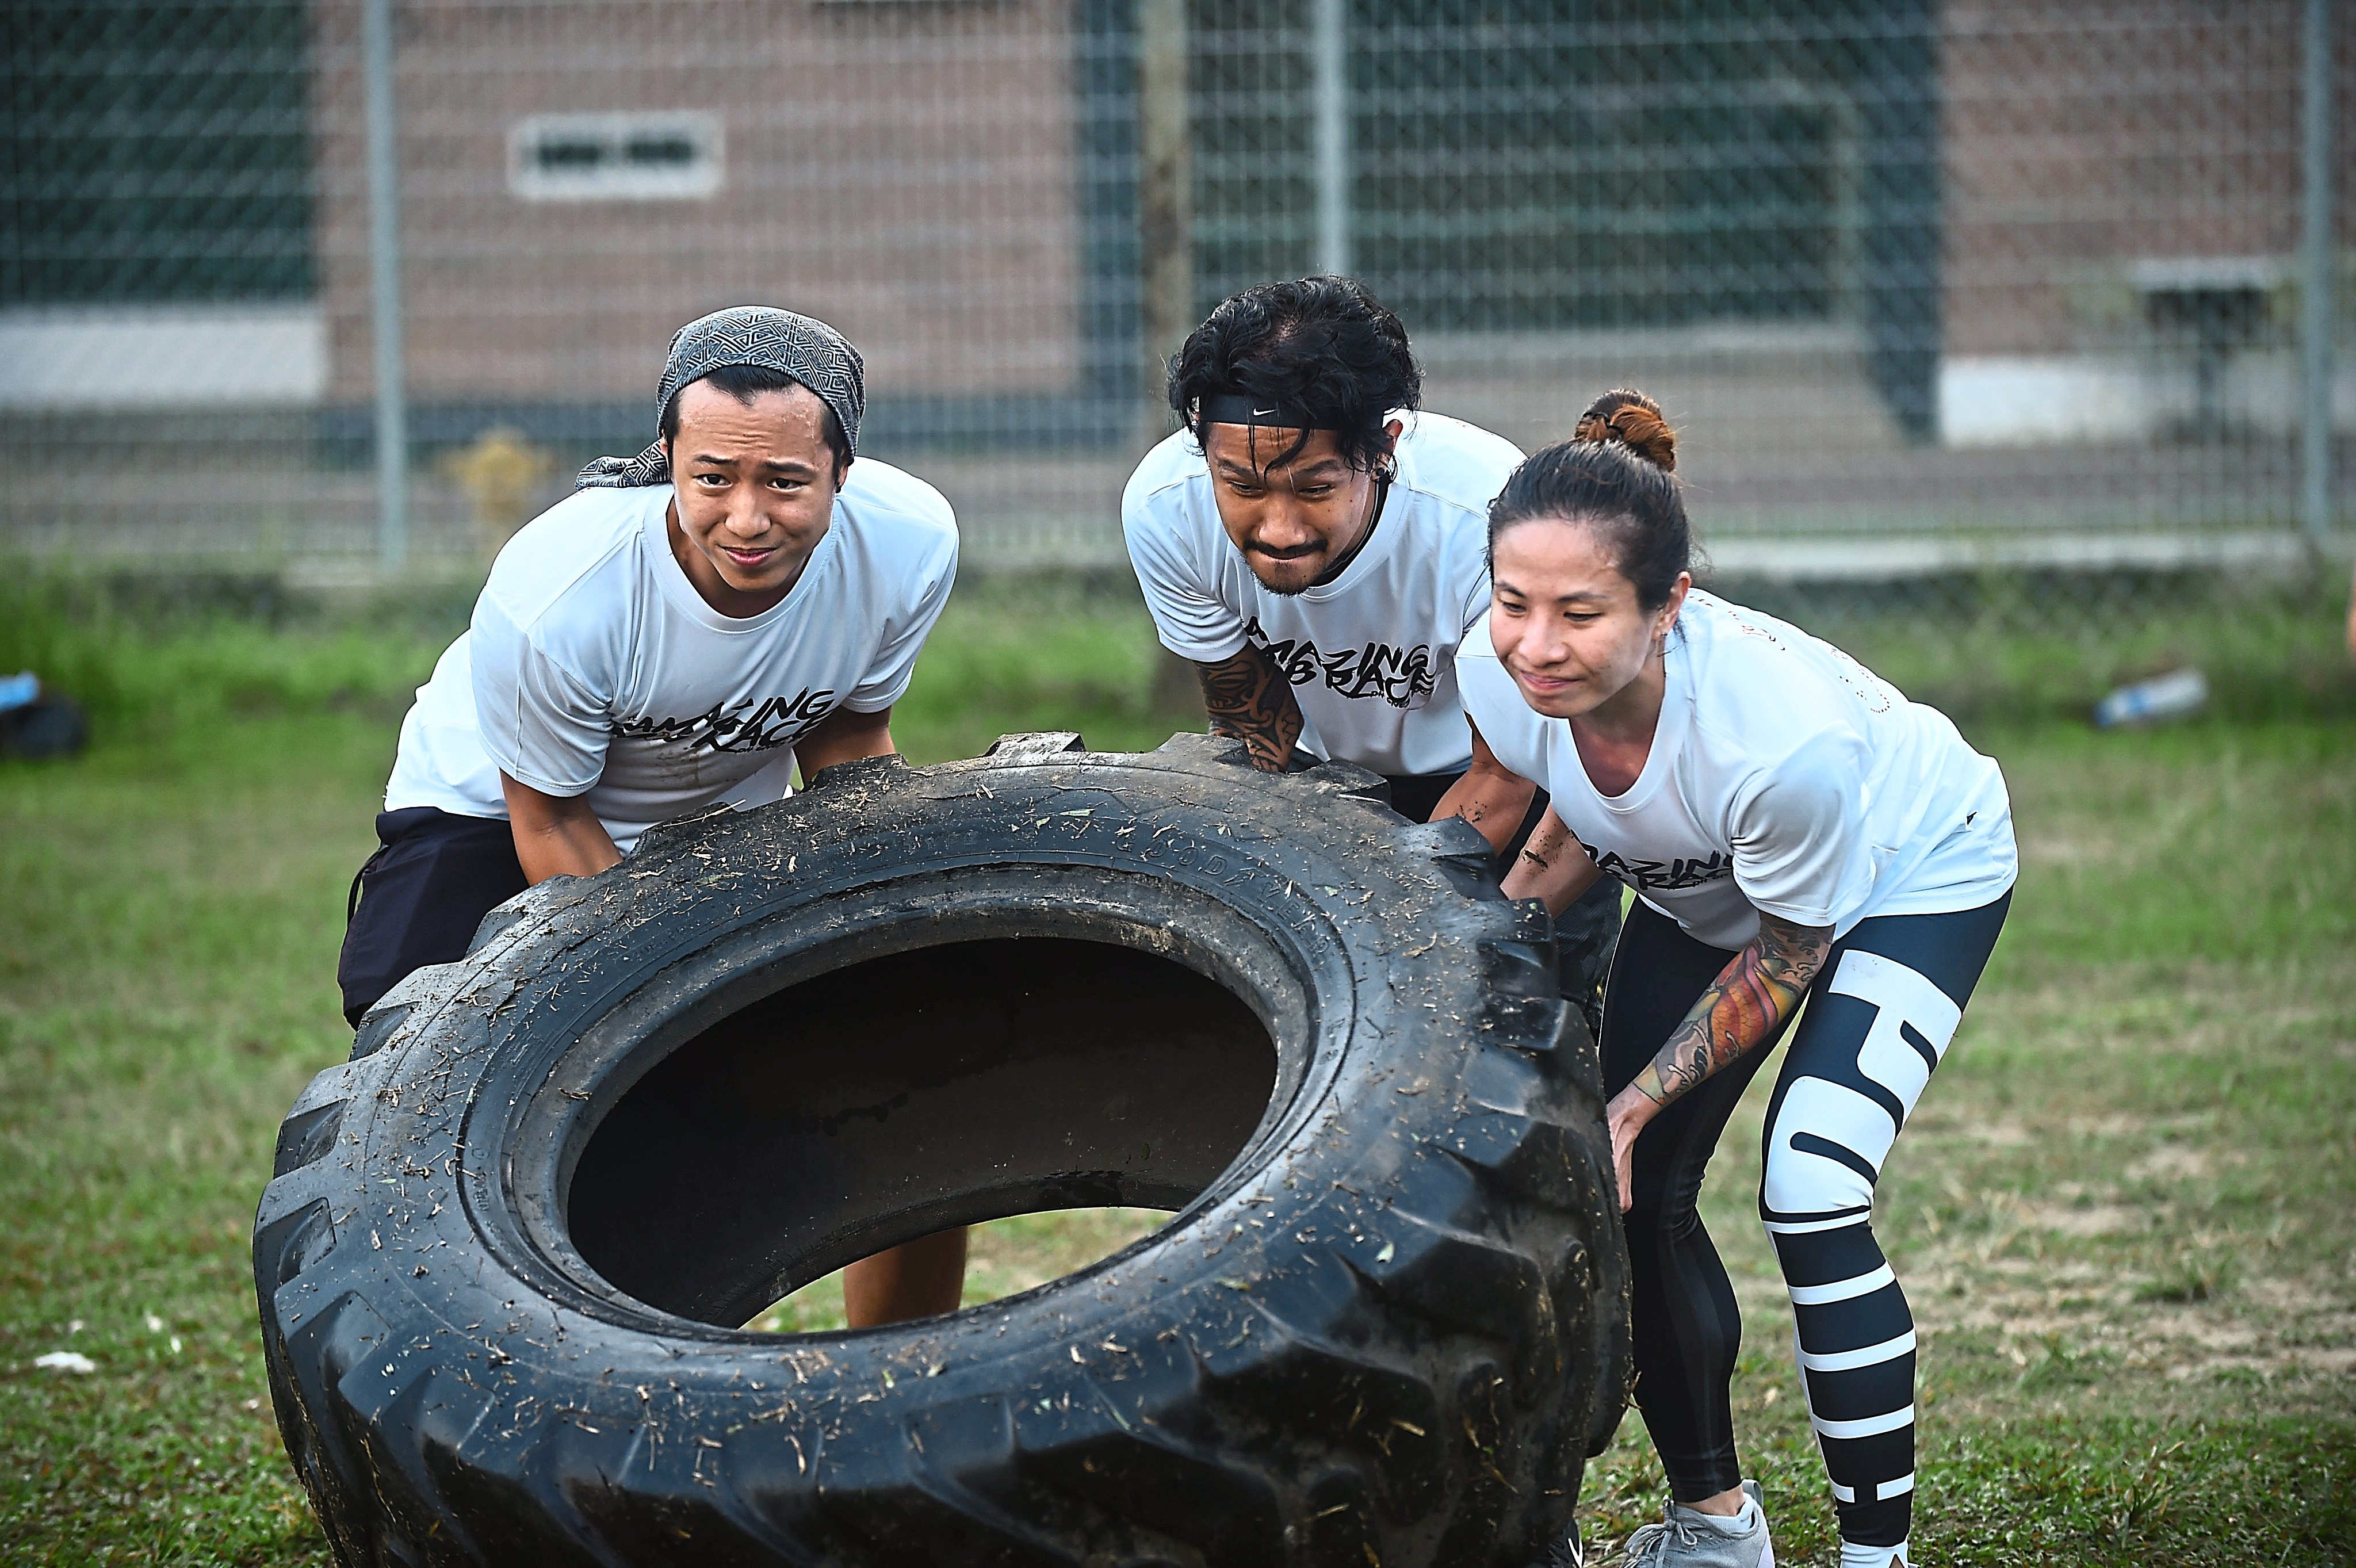 A team working together to flip a tyre across the field in once of the challenges.